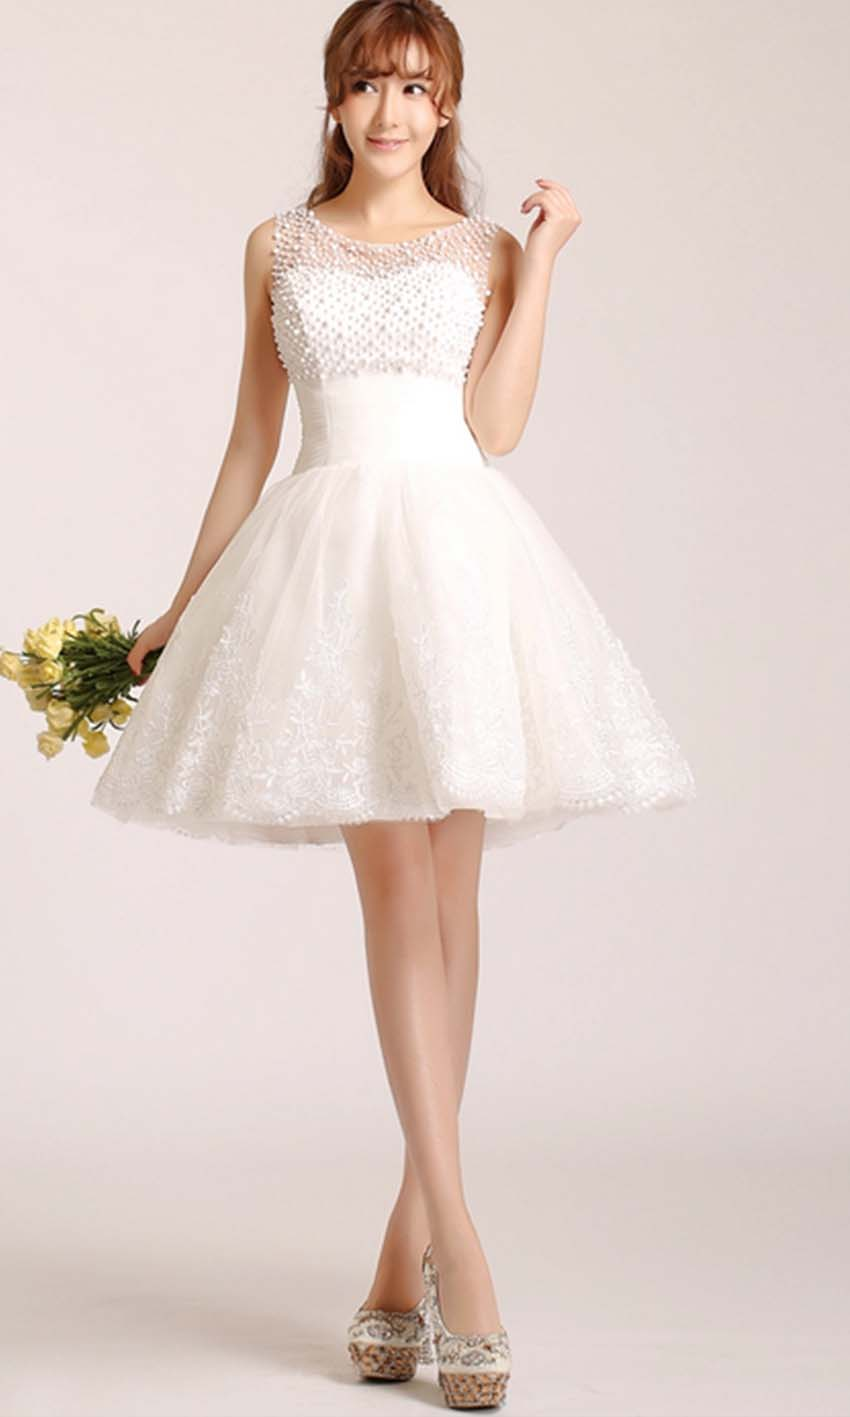 Cute White Short Lace Prom Dress with Pearl Mesh Top KSP239 ...